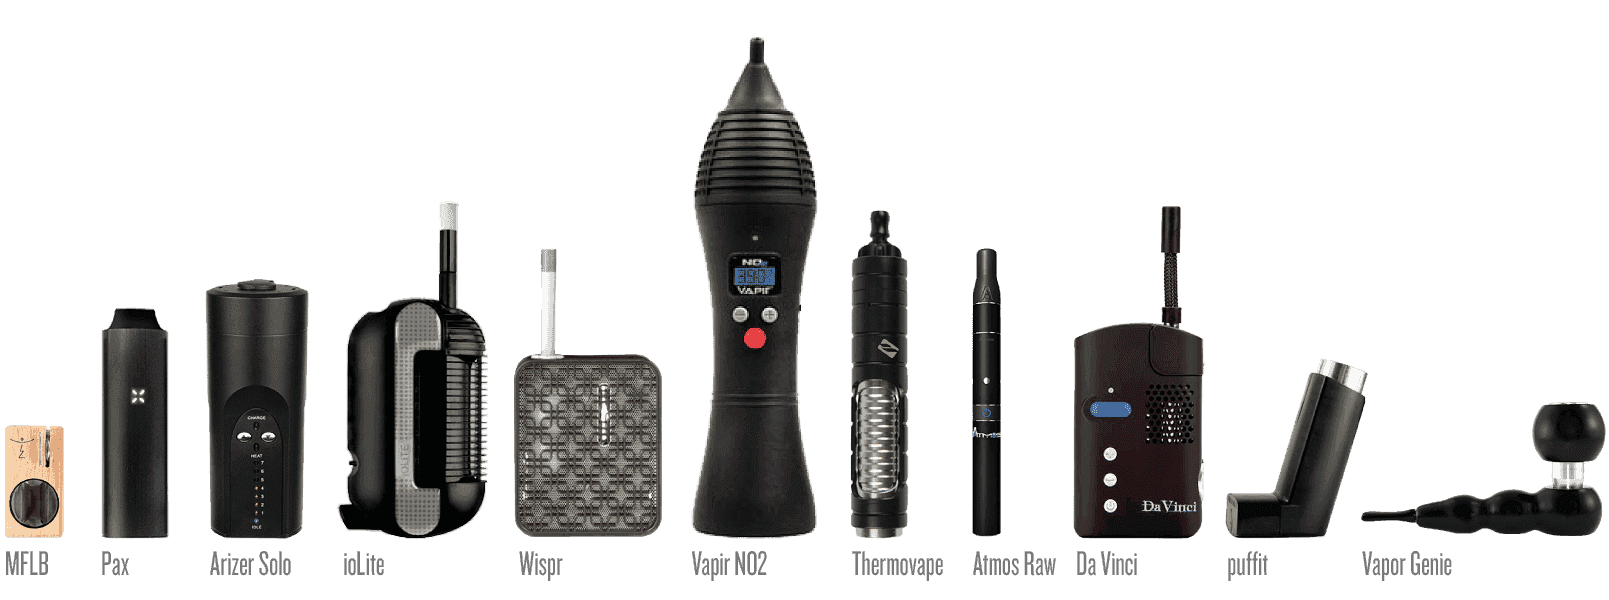 comparing portable vaporizers in size and shape